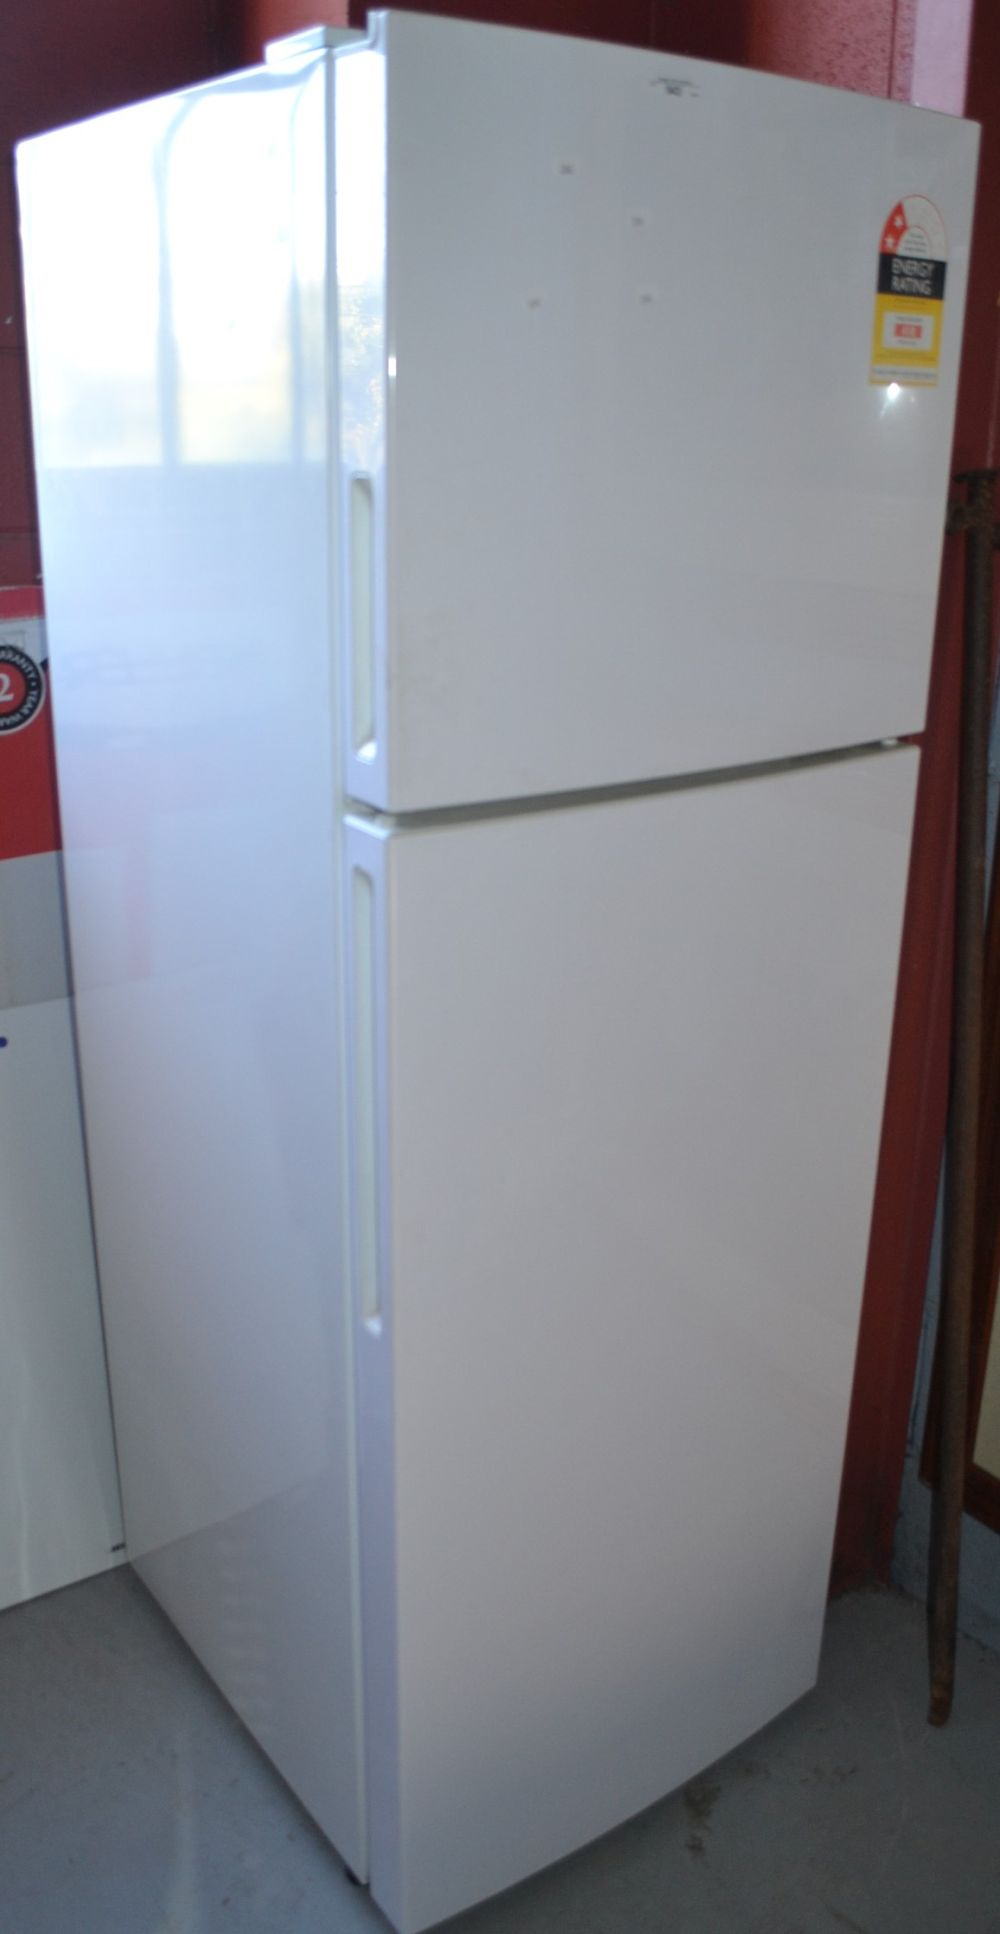 Haier fridge/freezer model no. HRF261FW